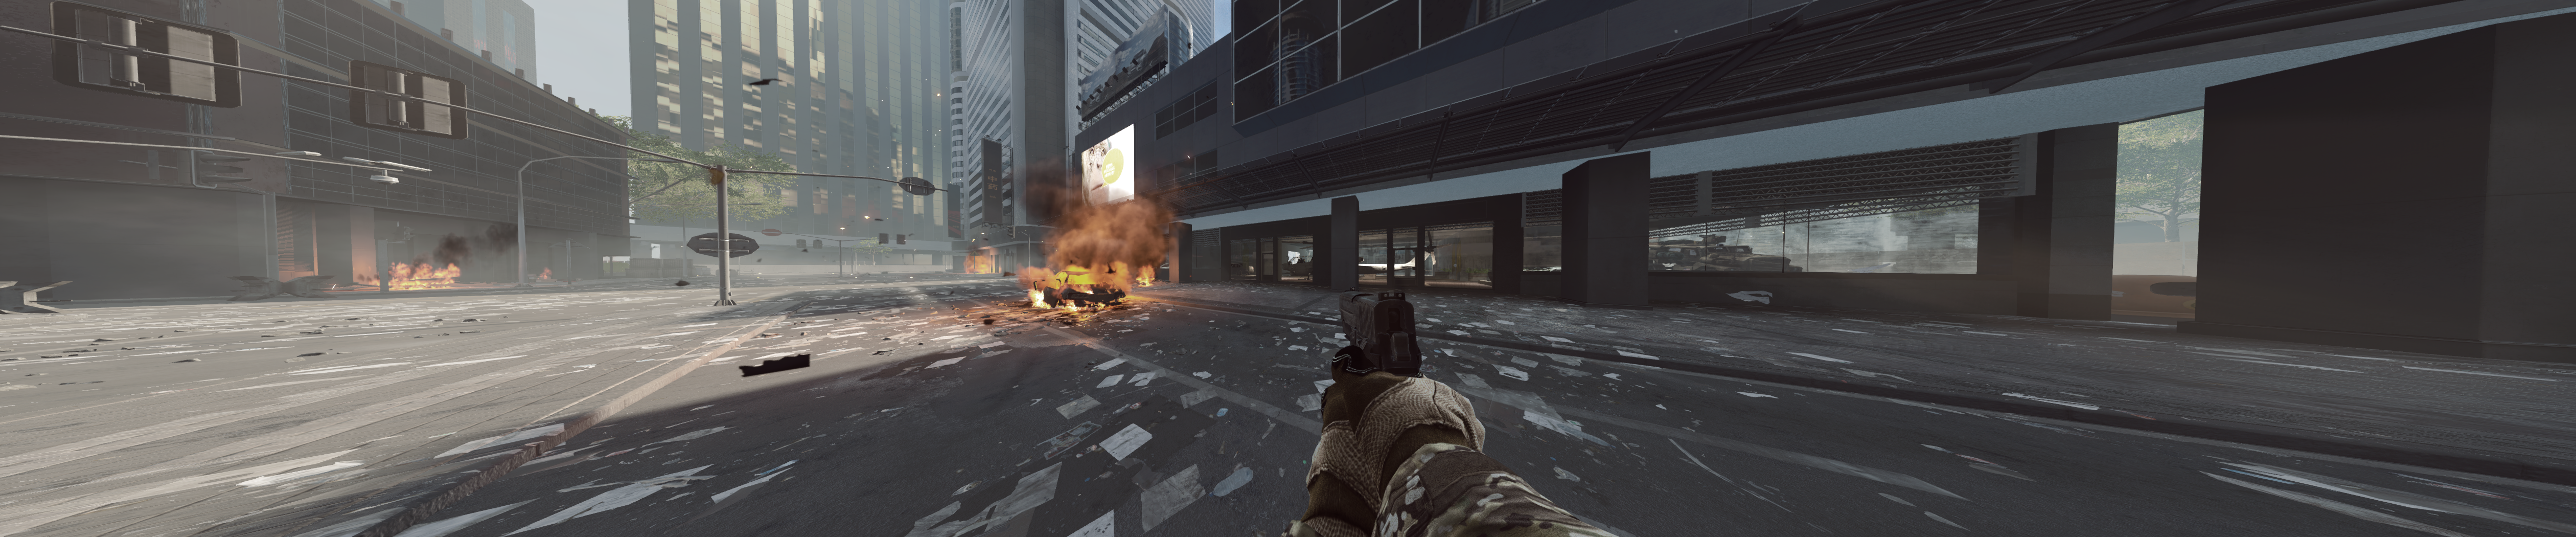 bf42013-10-0323-48-4295b5t.png